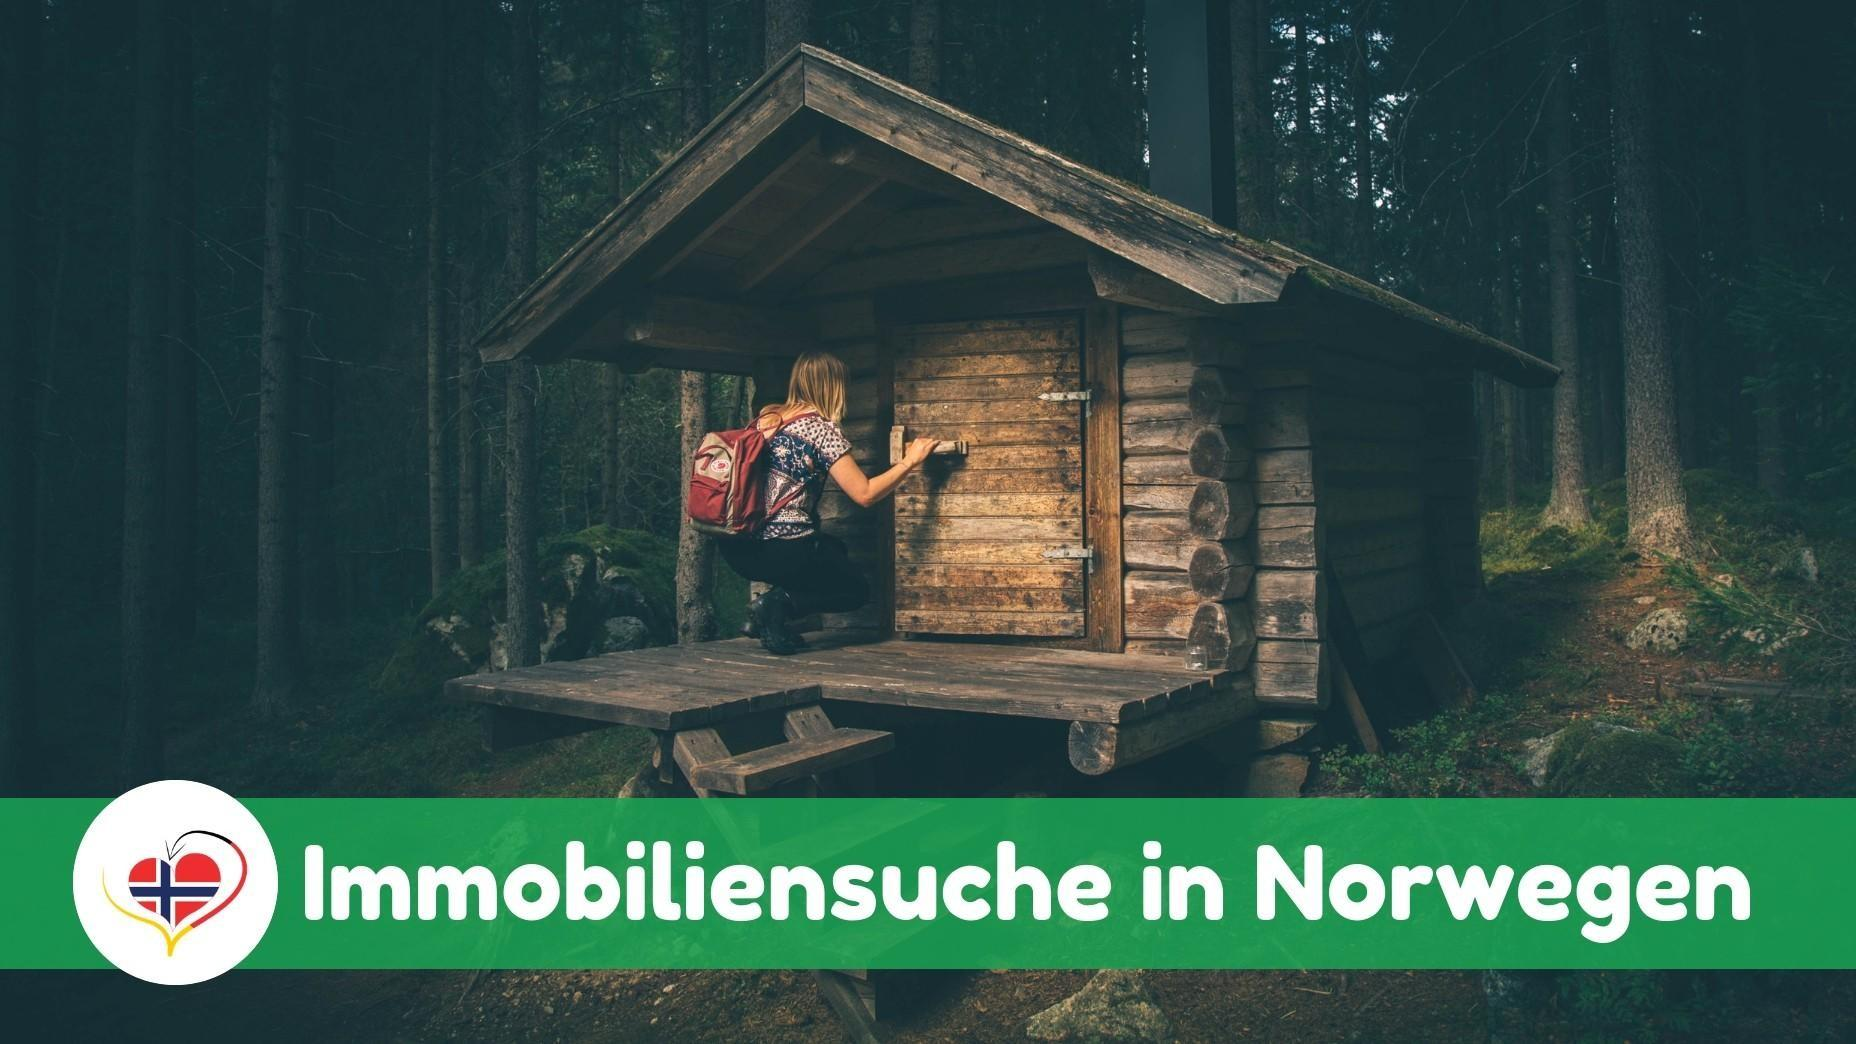 Immobiliensuche in Norwegen